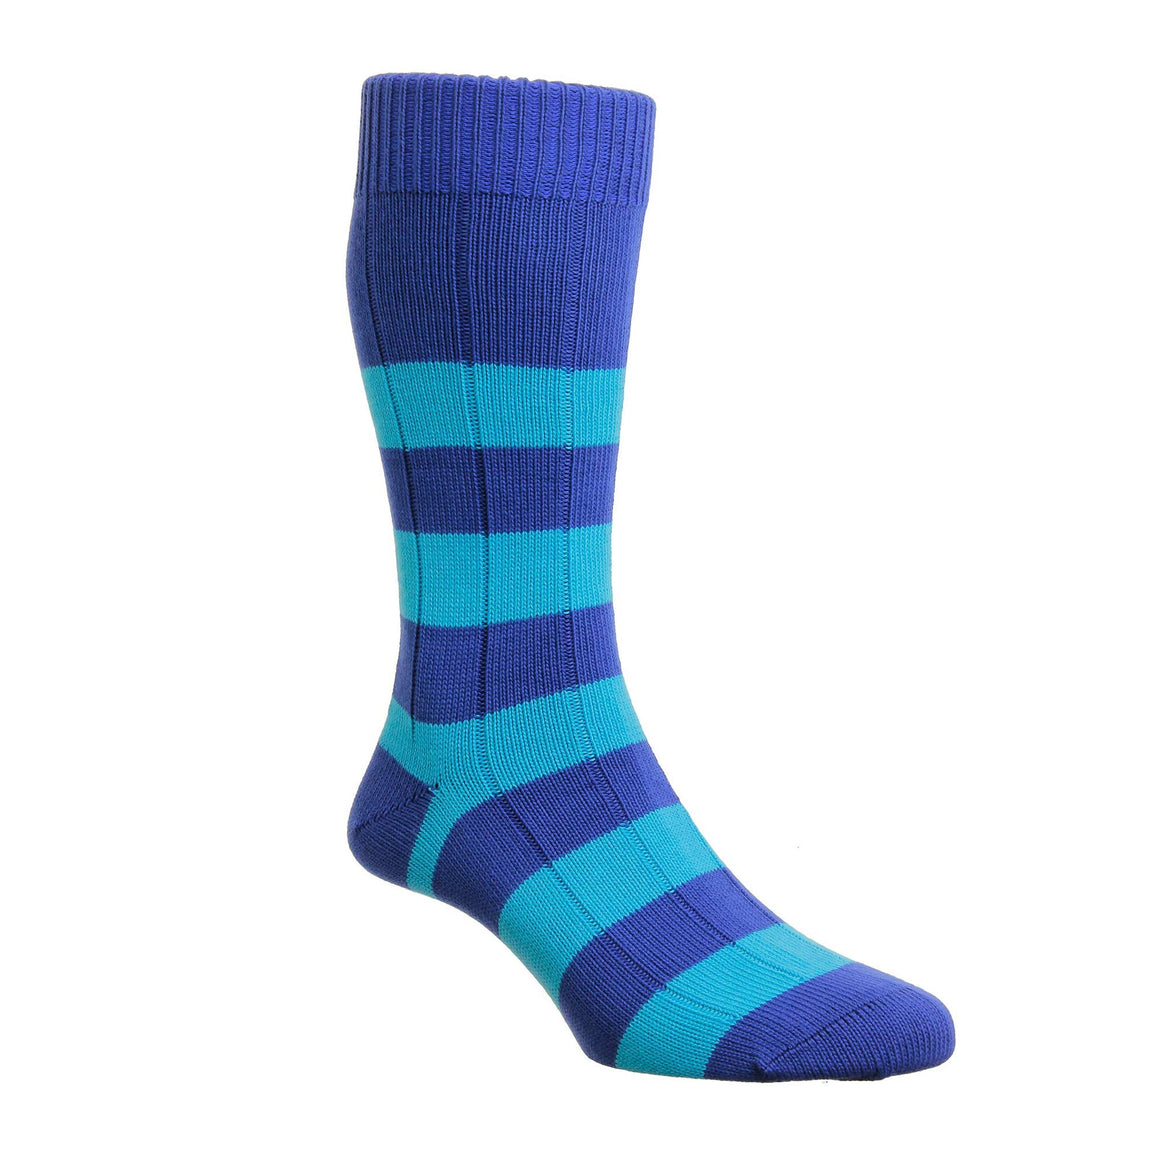 Rugby Stripe Socks for Men in Royal & Blue